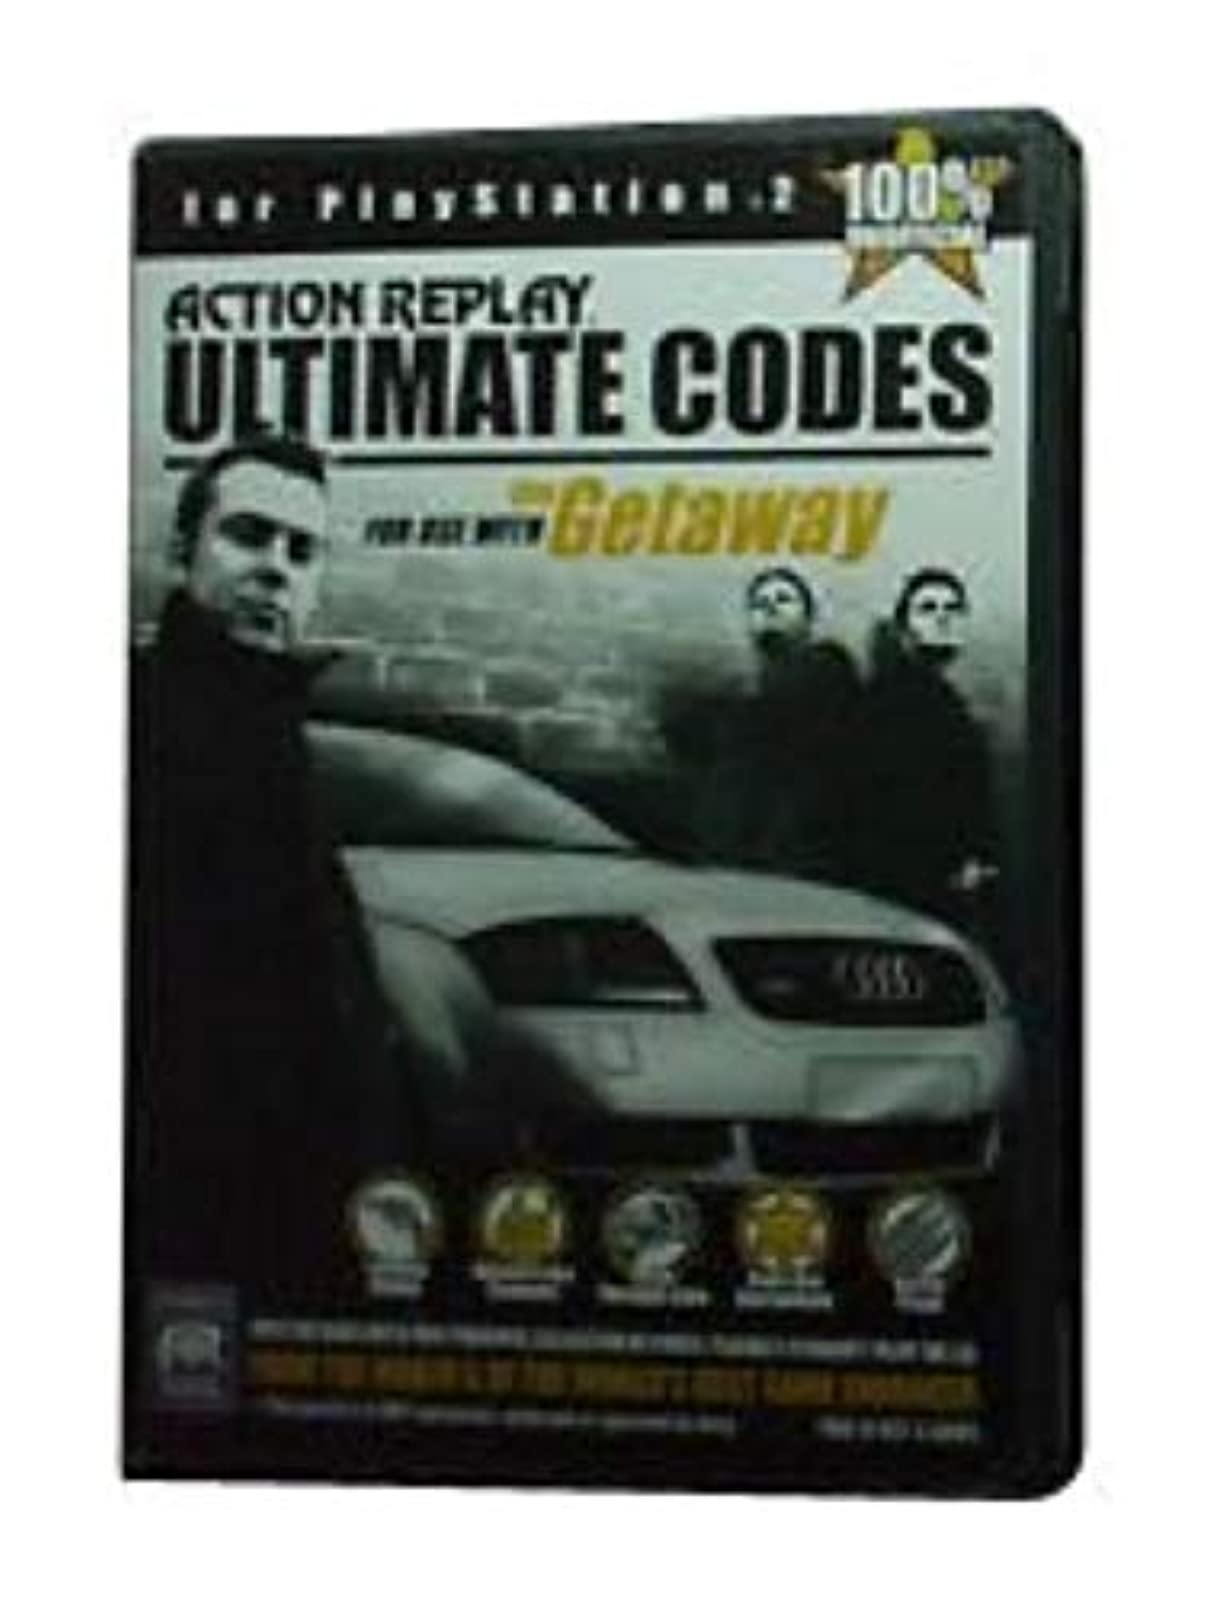 Action Replay Ultimate Codes For Use With The Getaway For PlayStation 2 PS2